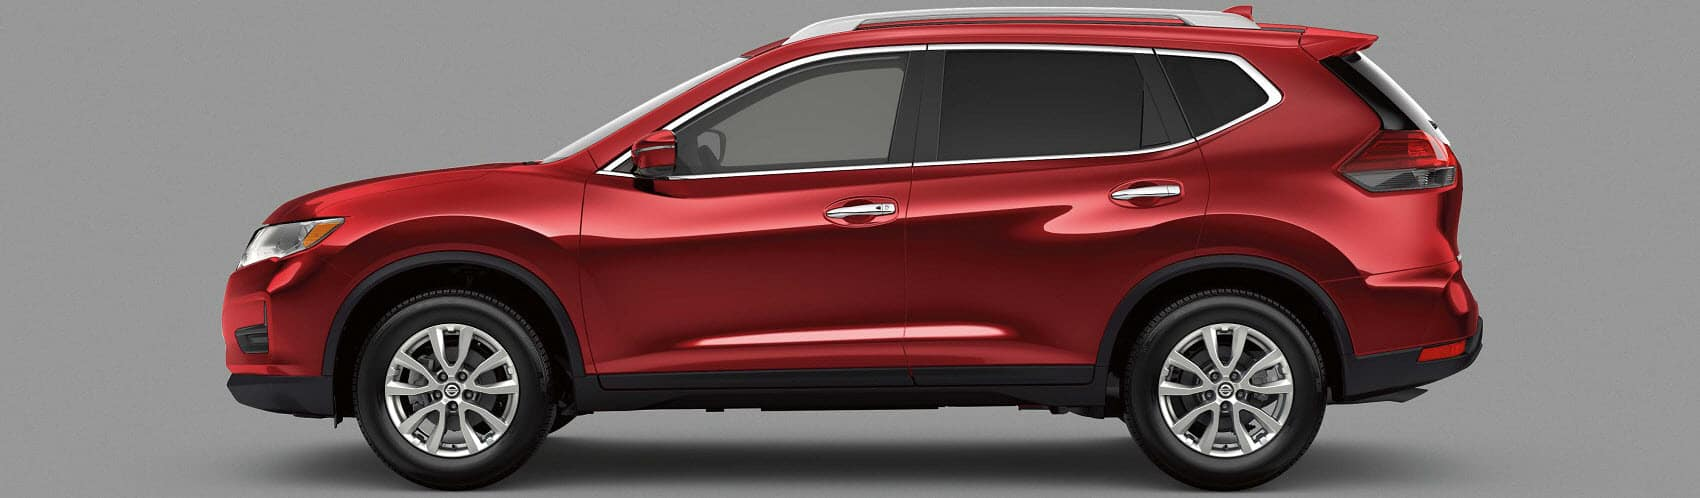 Nissan Rogue Scarlet Red